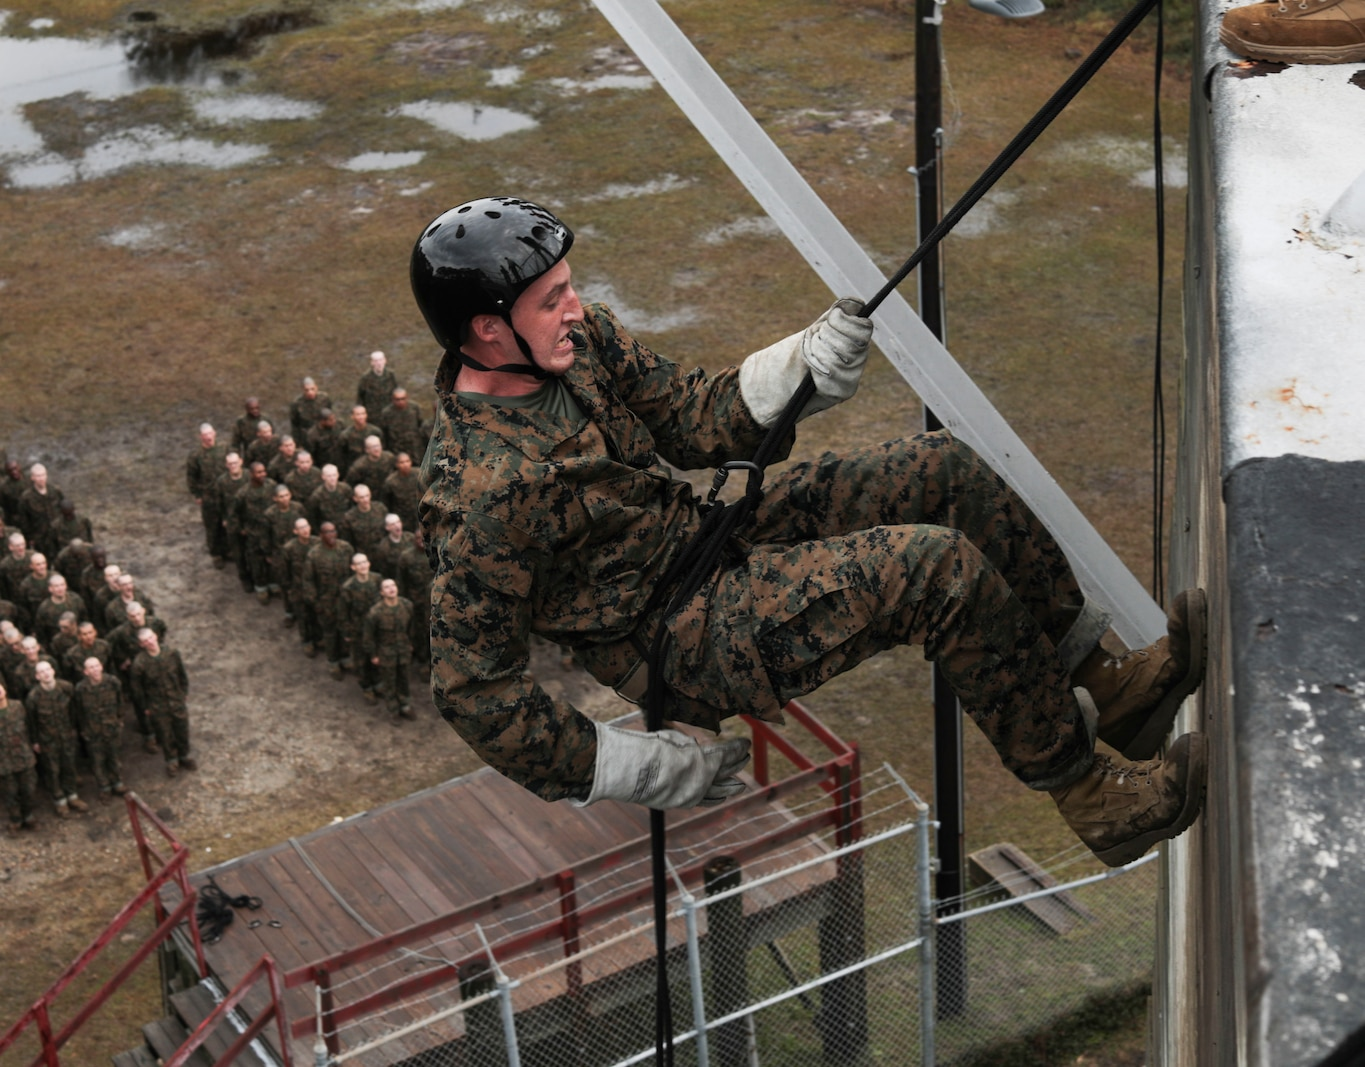 Recruits with Bravo Company, 1st Recruit Training Battalion, go down the rappel tower at Marine Corps Recruit Depot Parris Island, S.C., Dec. 30, 2019. The rappel tower is a training event designed to instill confidence and eliminate fear of heights within recruits. (U.S. Marine Corps photo by Lance Cpl. Godfrey Ampong)